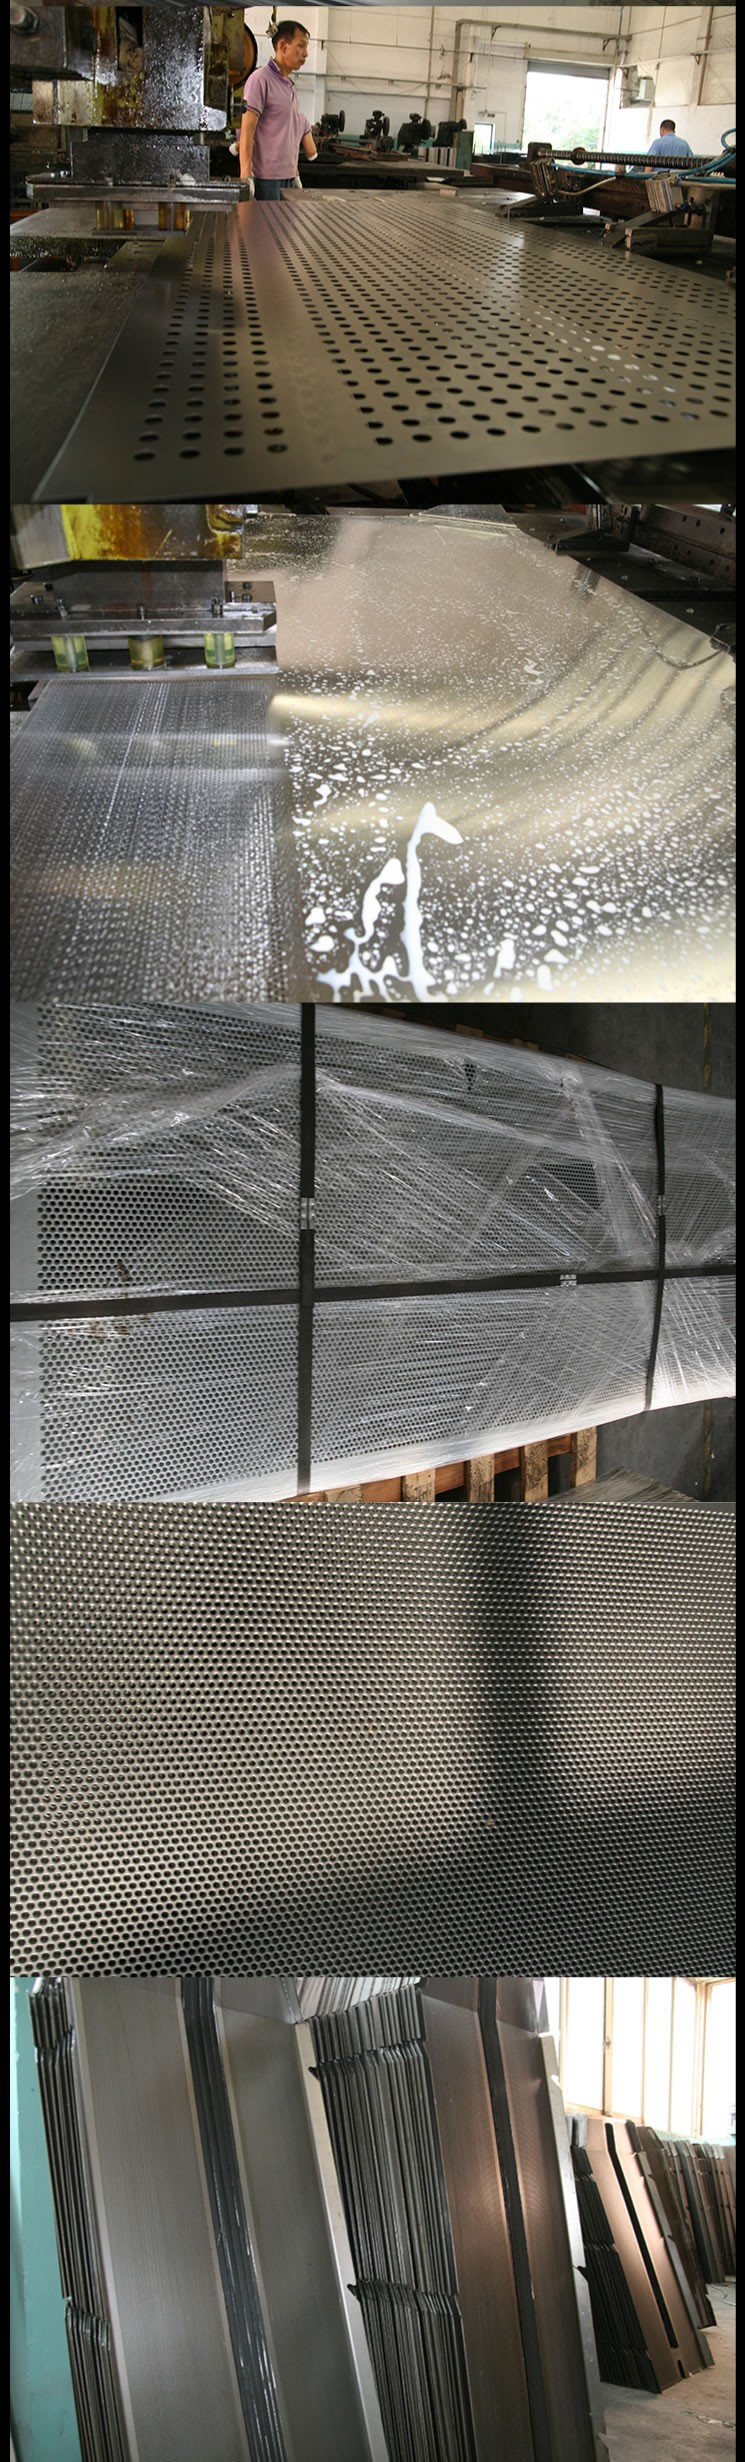 Perforated plates OEM stainless Plate 304